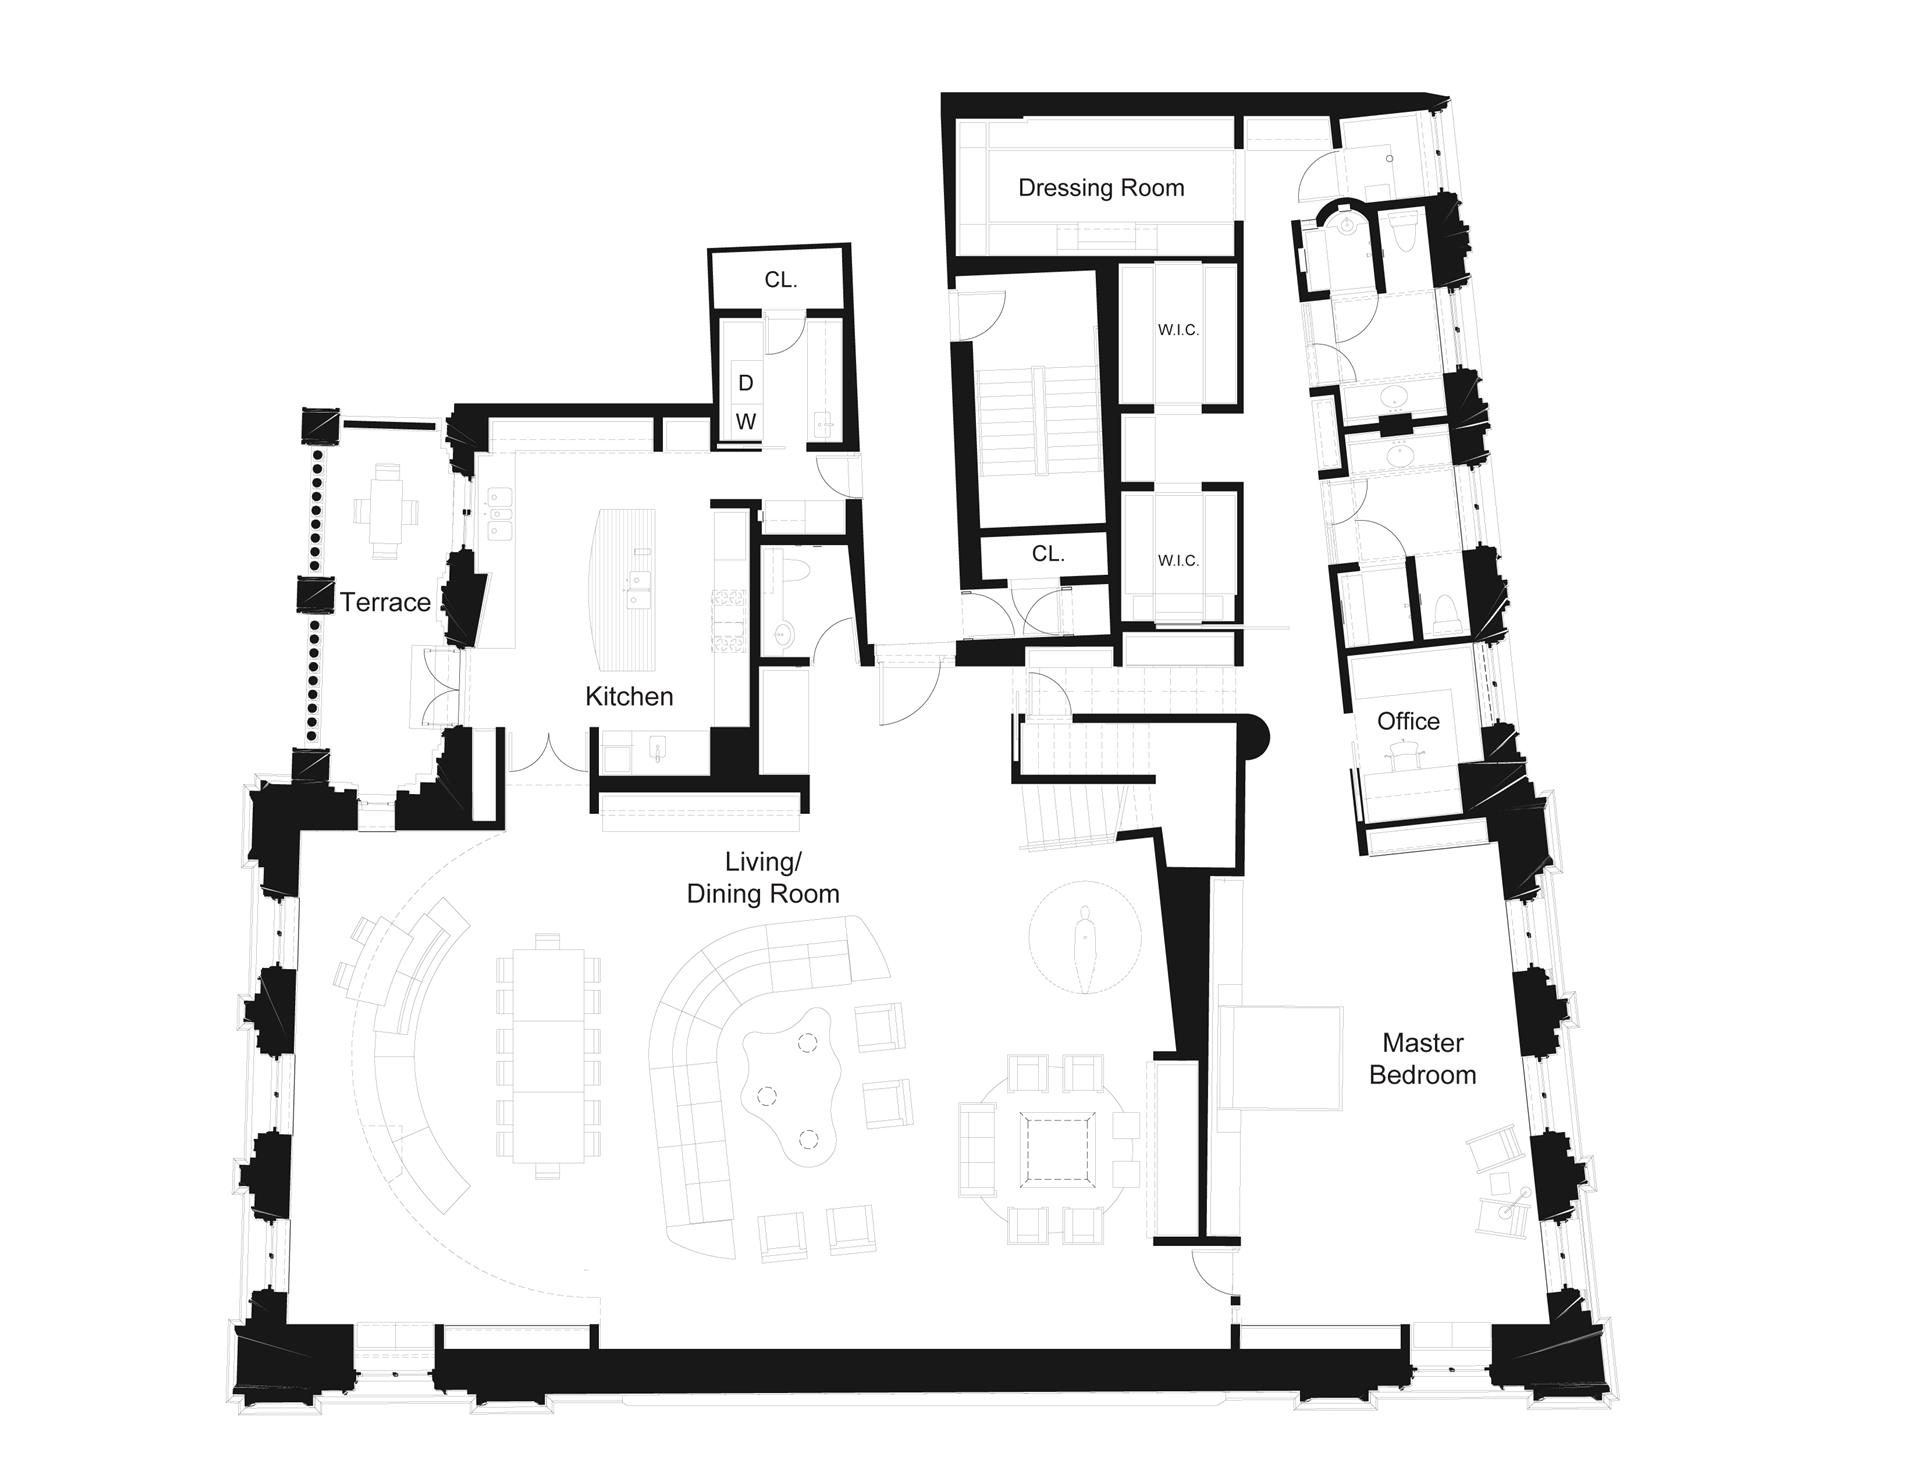 Floor plan of THE POLICE BUILDING, 240 Centre St, 5H - SoHo - Nolita, New York